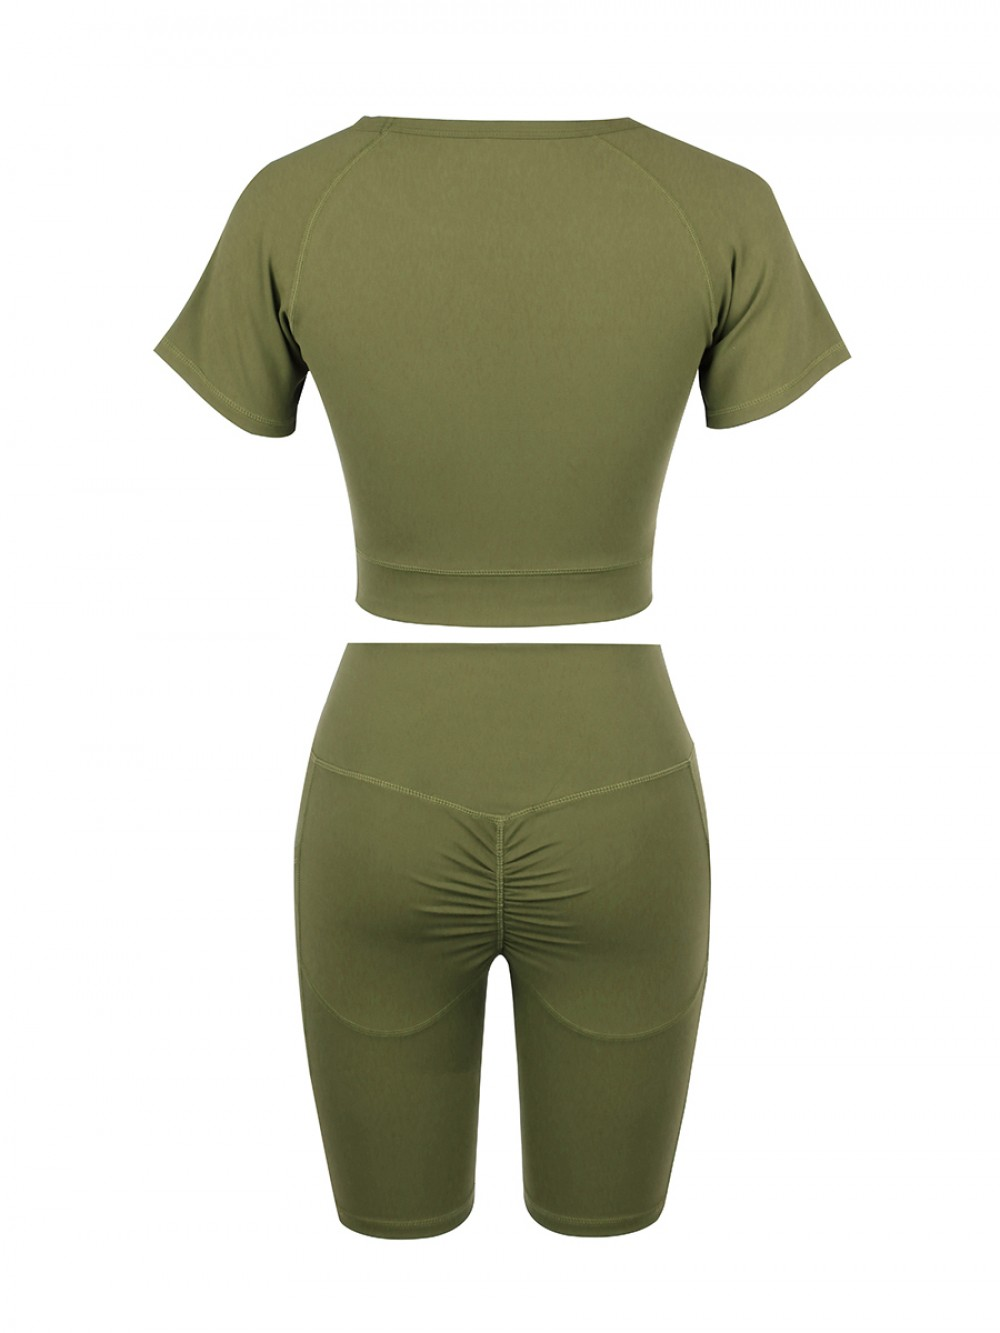 Comfortable Army Green Crew Neck Top Wide Waistband Shorts